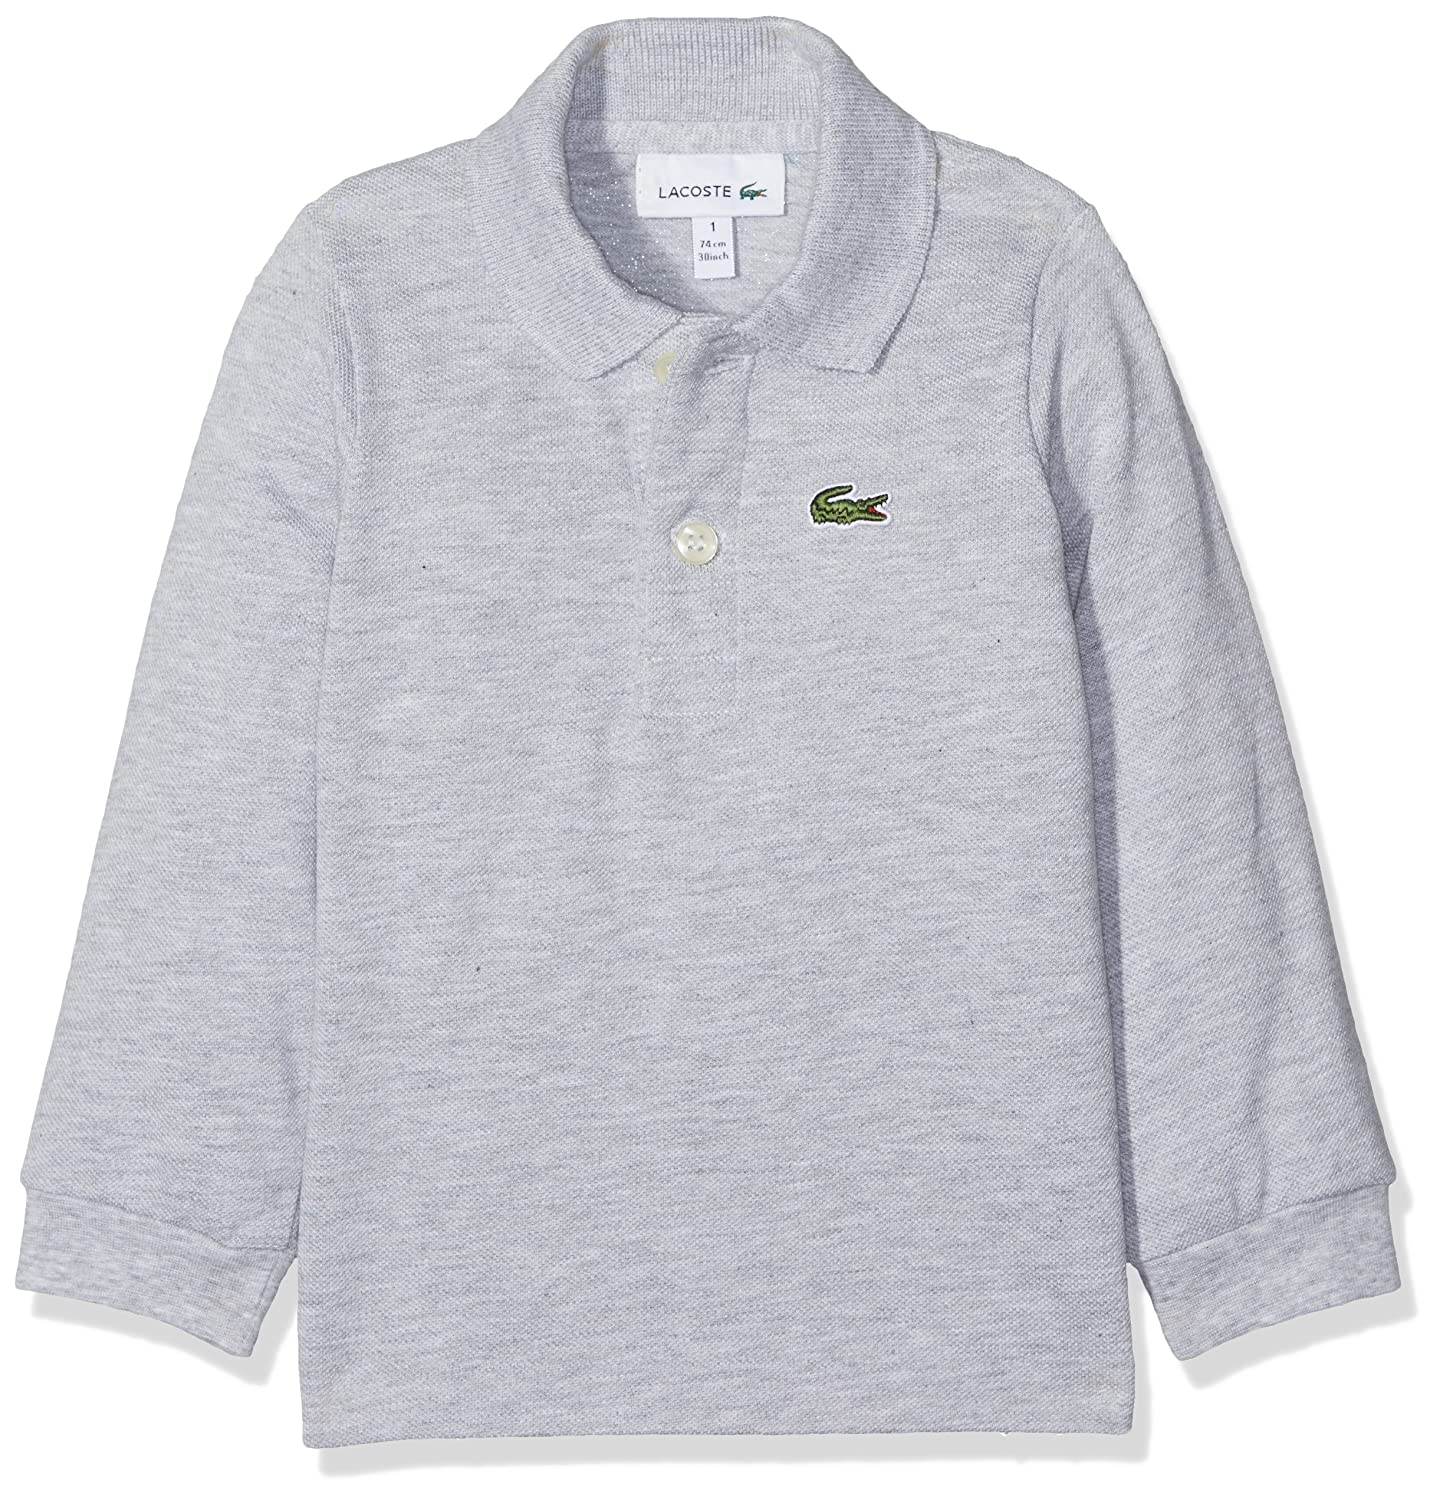 Lacoste Baby Boys' Polo Shirt PJ8915